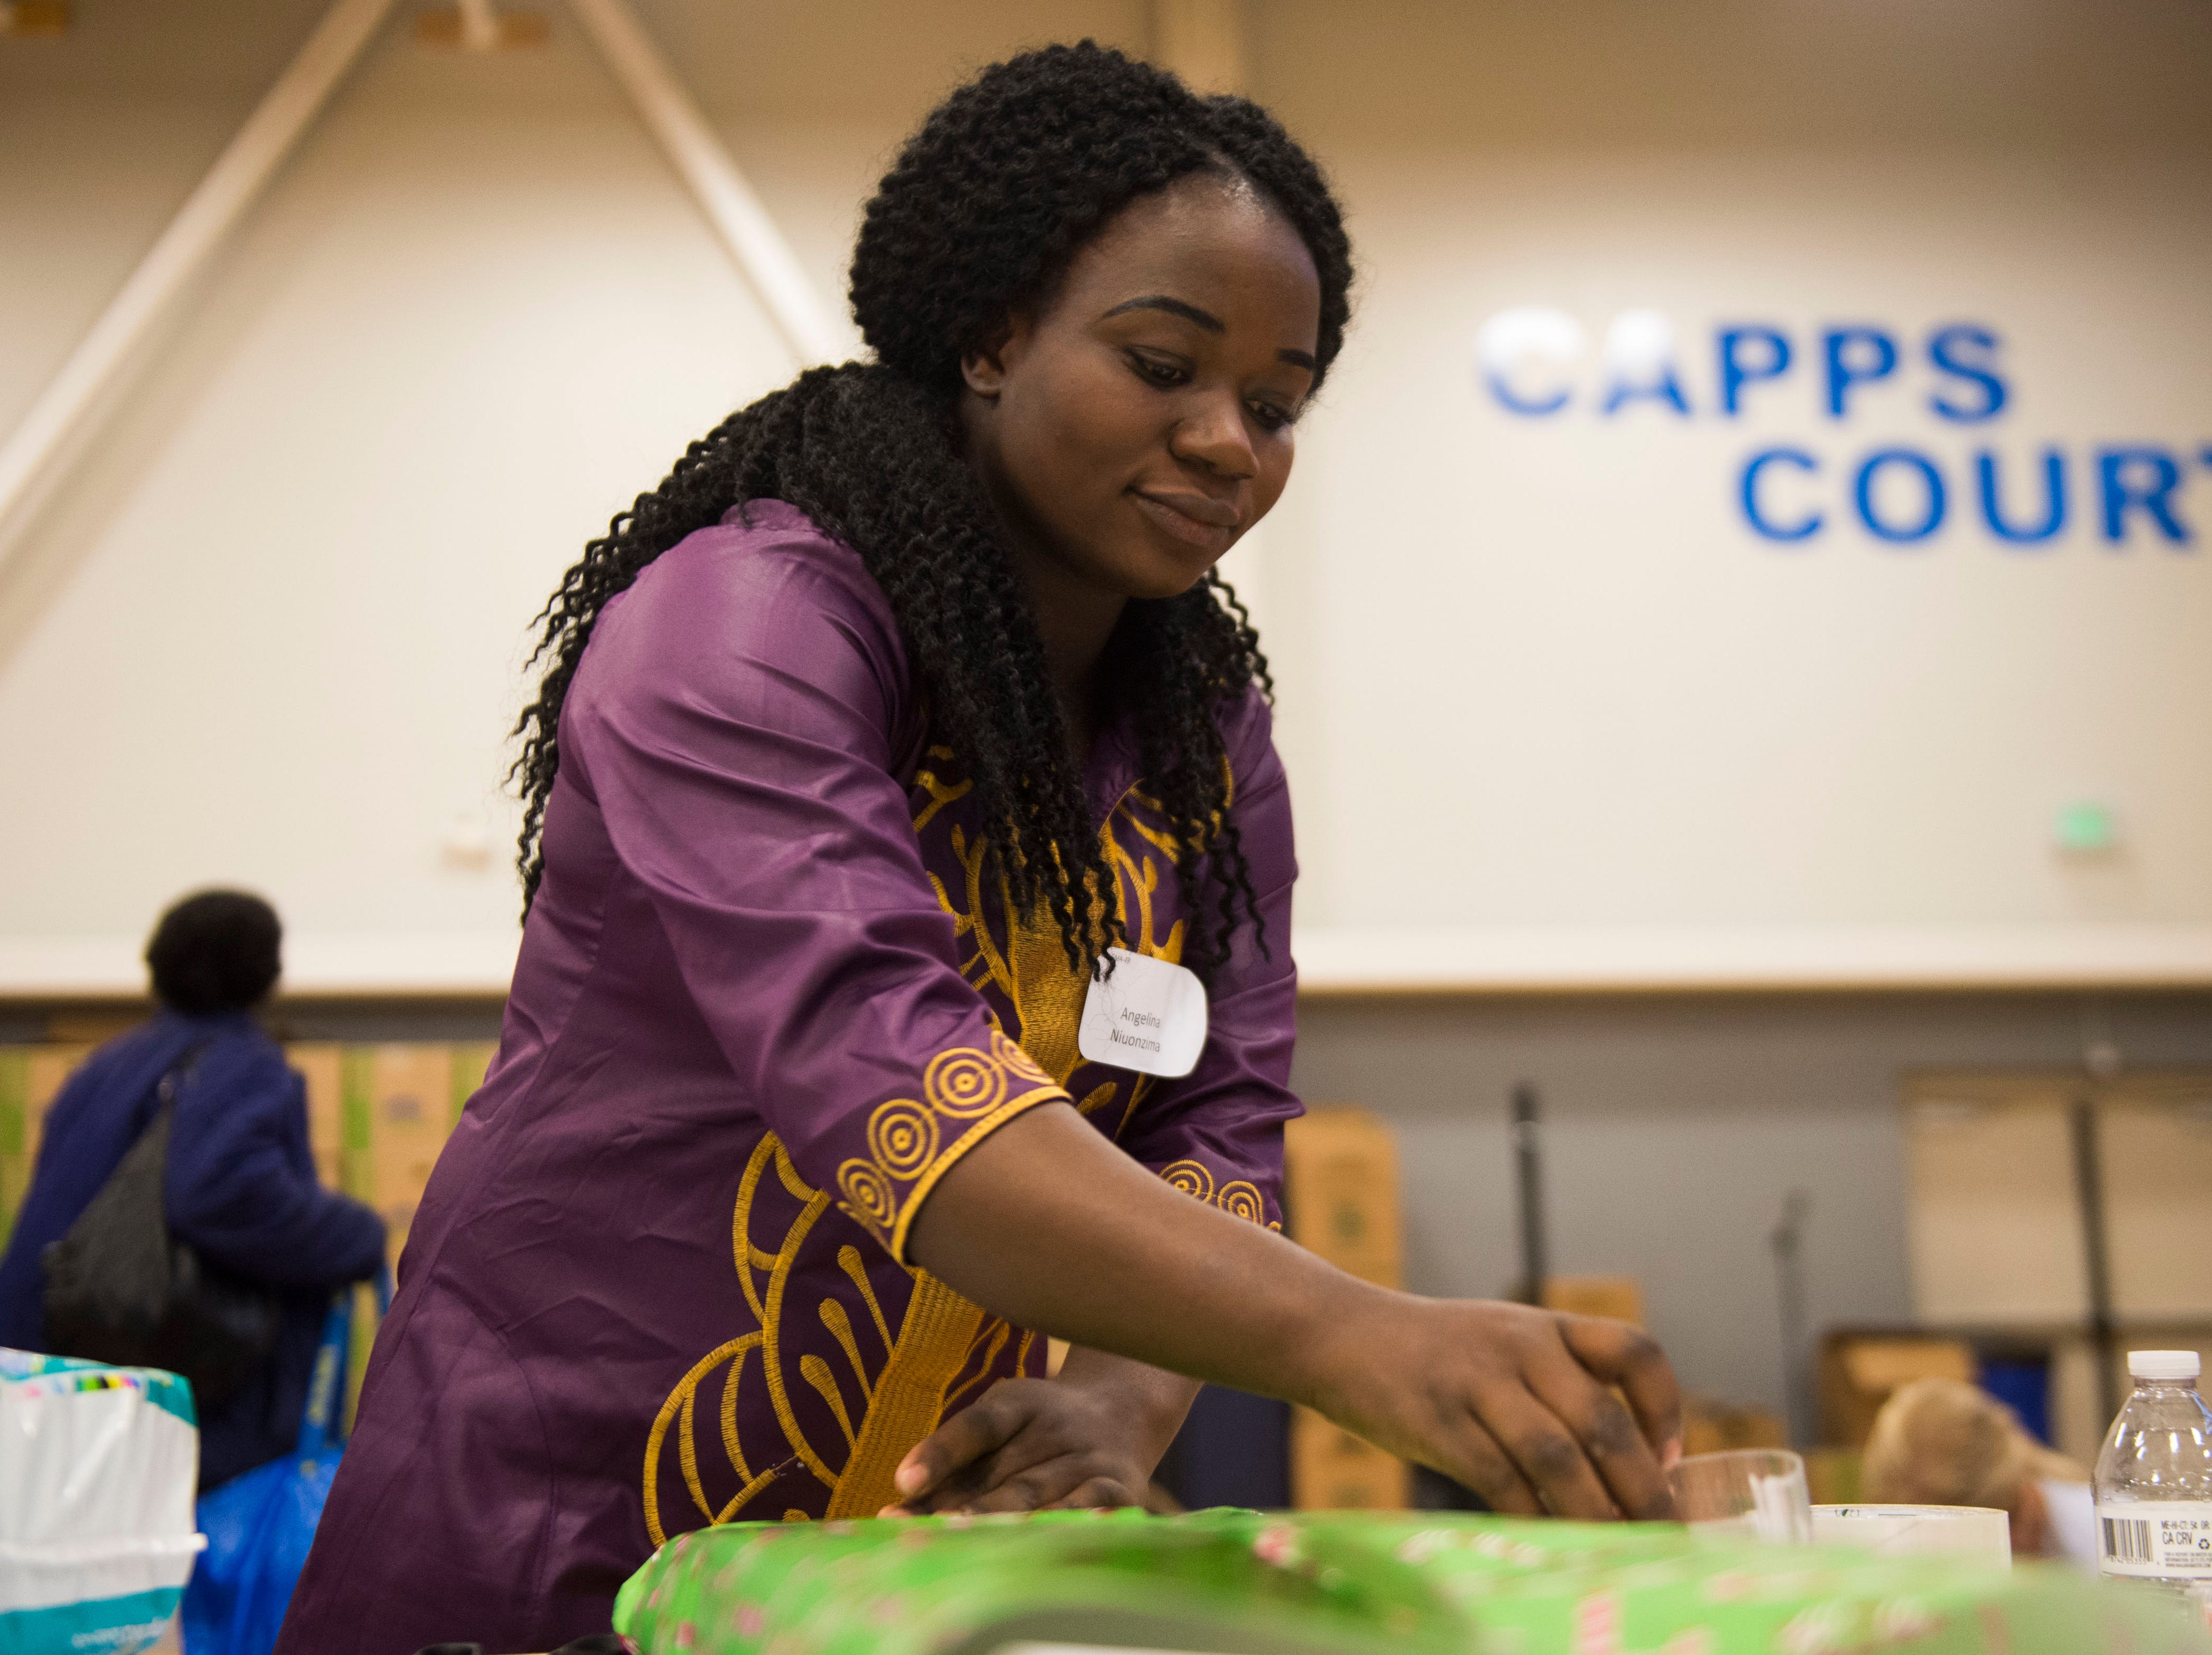 Angelina Niuonzima wraps gifts at the Boys and Girls Clubs Regal Teen Center in Knoxville Saturday, Dec. 8, 2018. Parents, grandparents or guardians of over 1,500 underserved children were able to pick out a limited number of free gifts for their child.